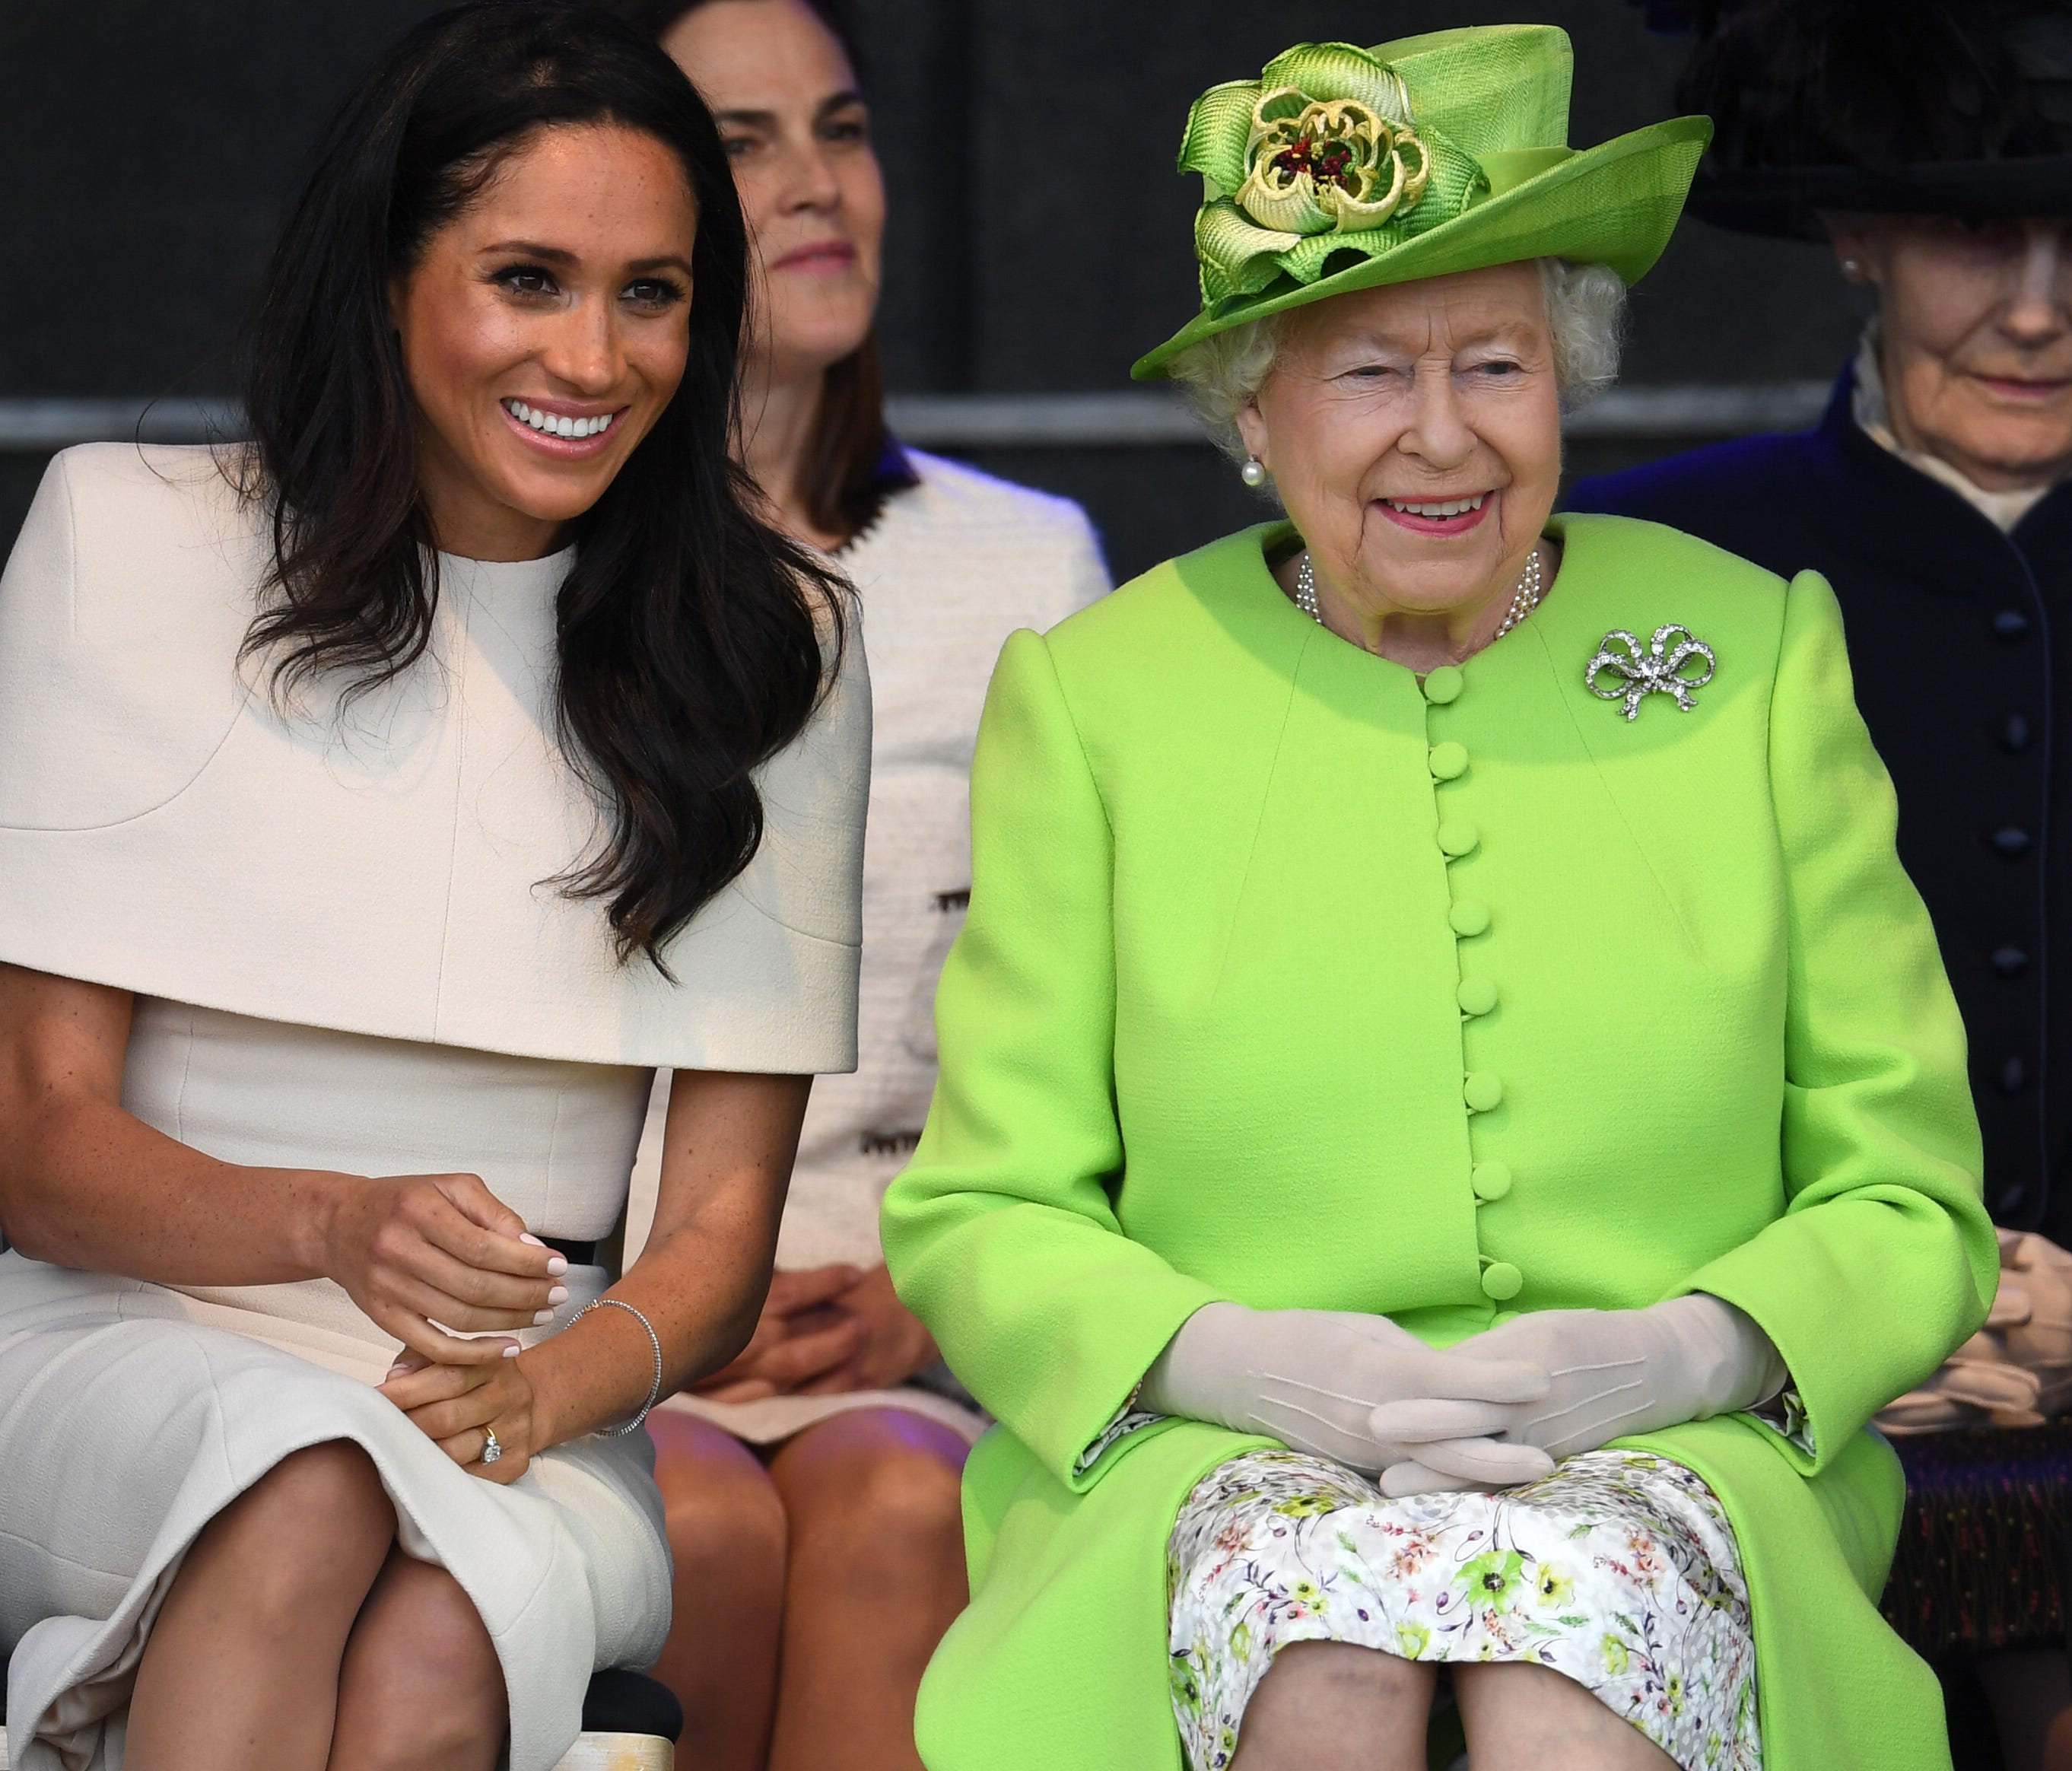 Queen Elizabeth II sits with Meghan, Duchess of Sussex during a ceremony to open the new Mersey Gateway Bridge on June 14, 2018 in the town of Widnes in Halton, Cheshire, England.